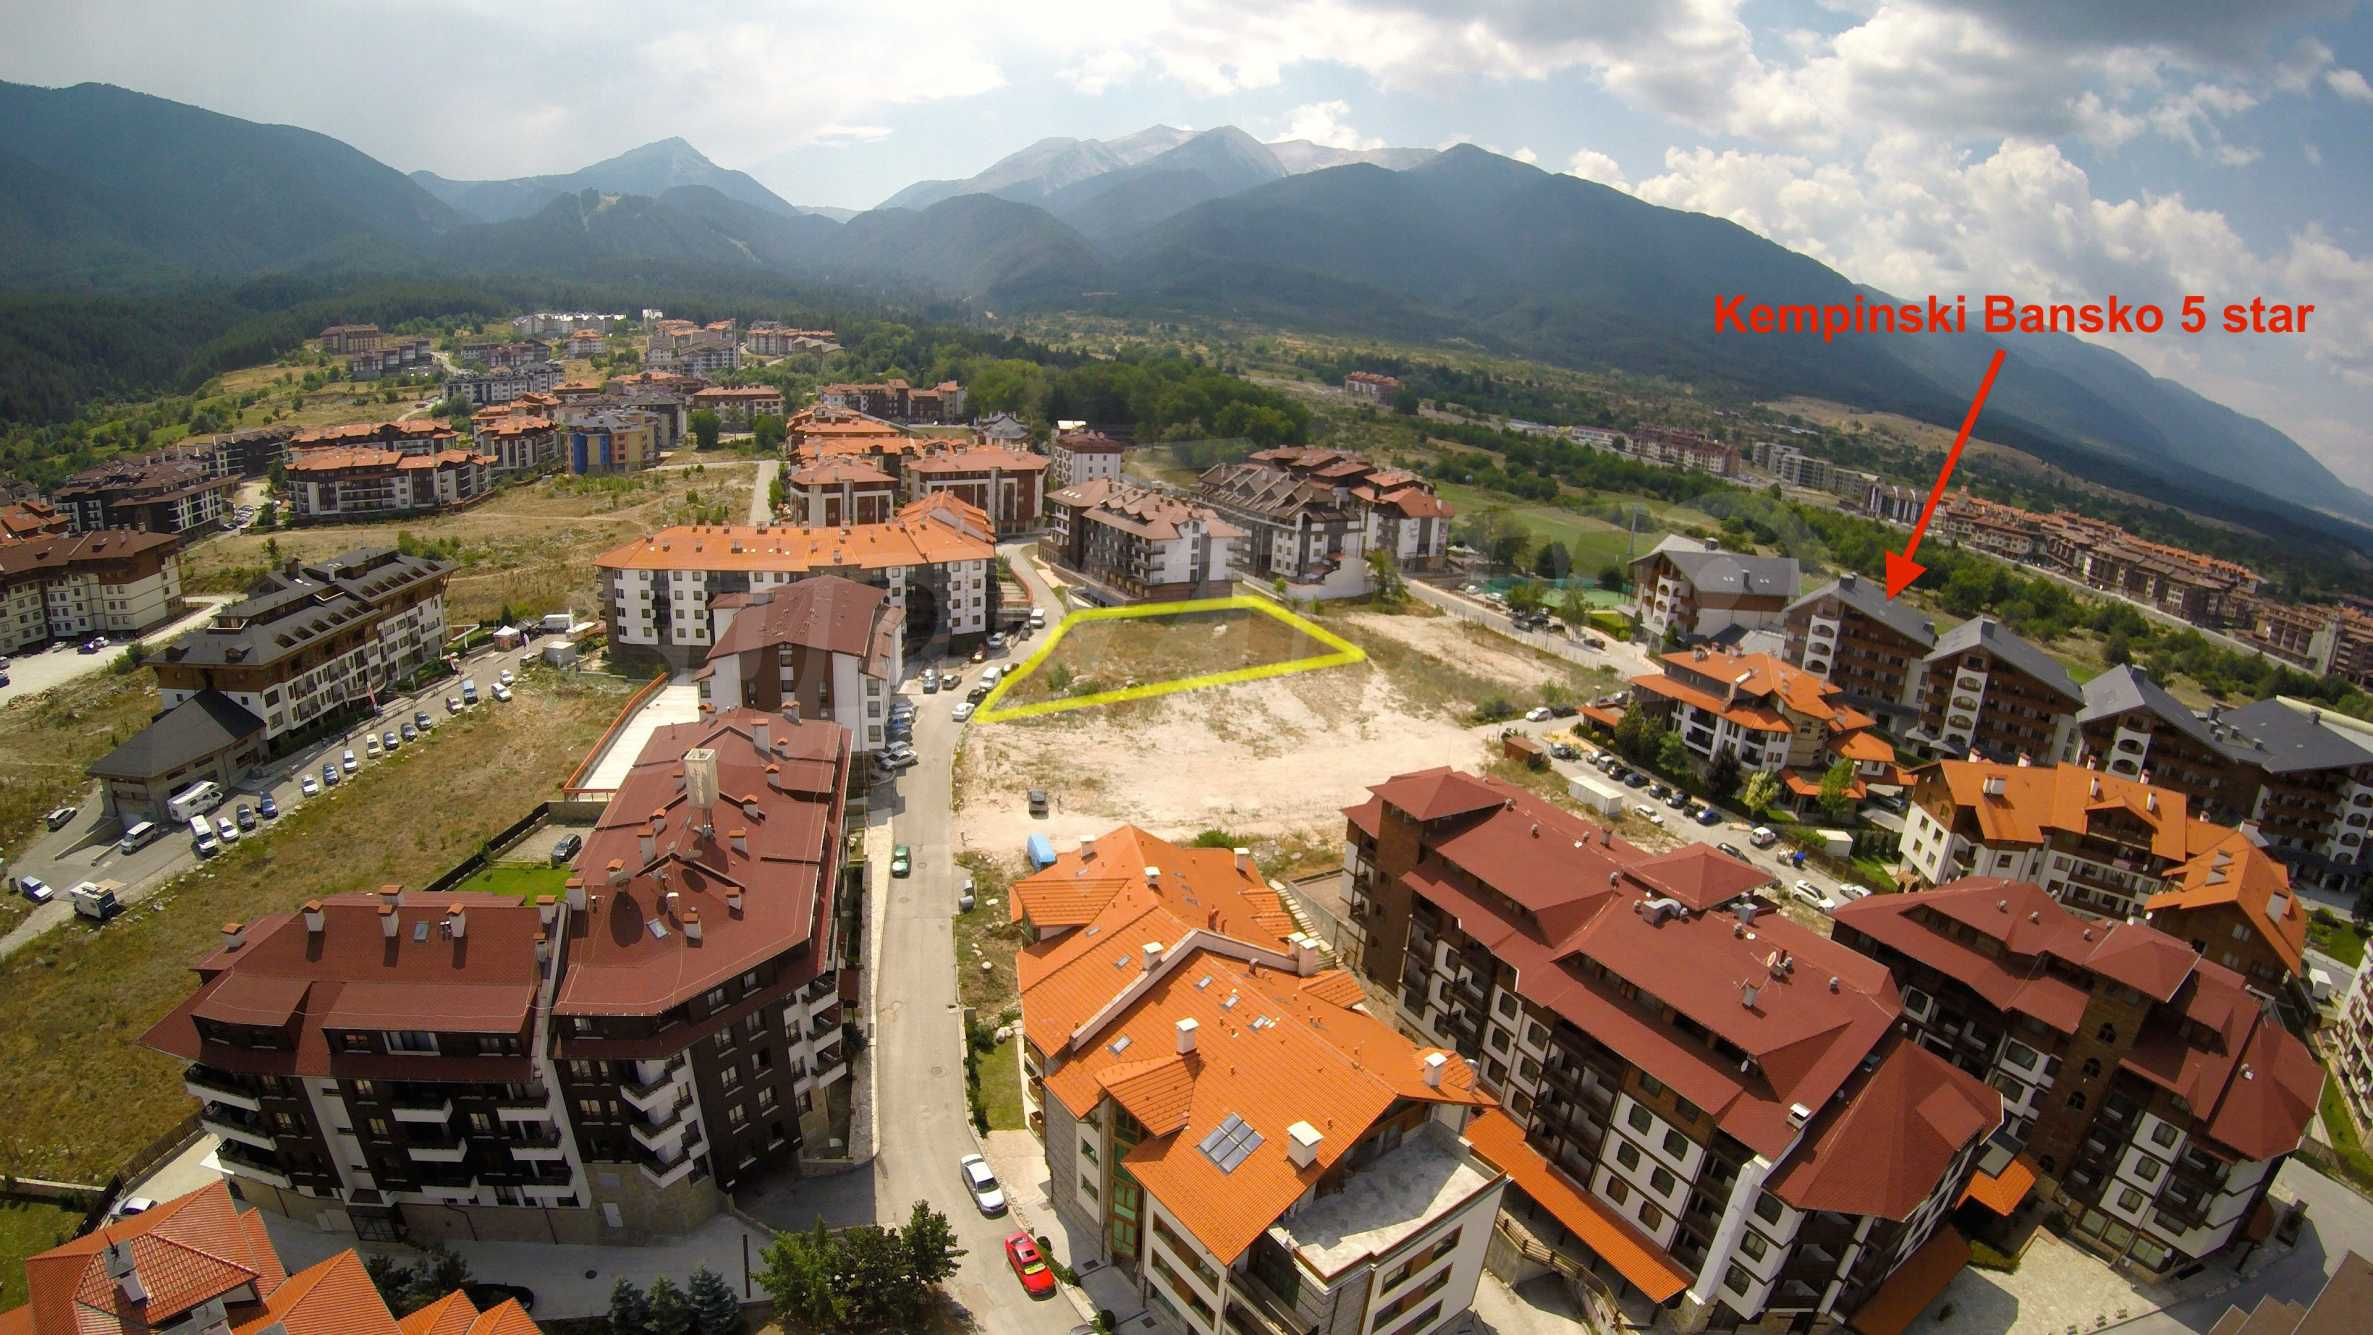 Chateau Blanc: Probably the best investment opportunity in Bansko... 26